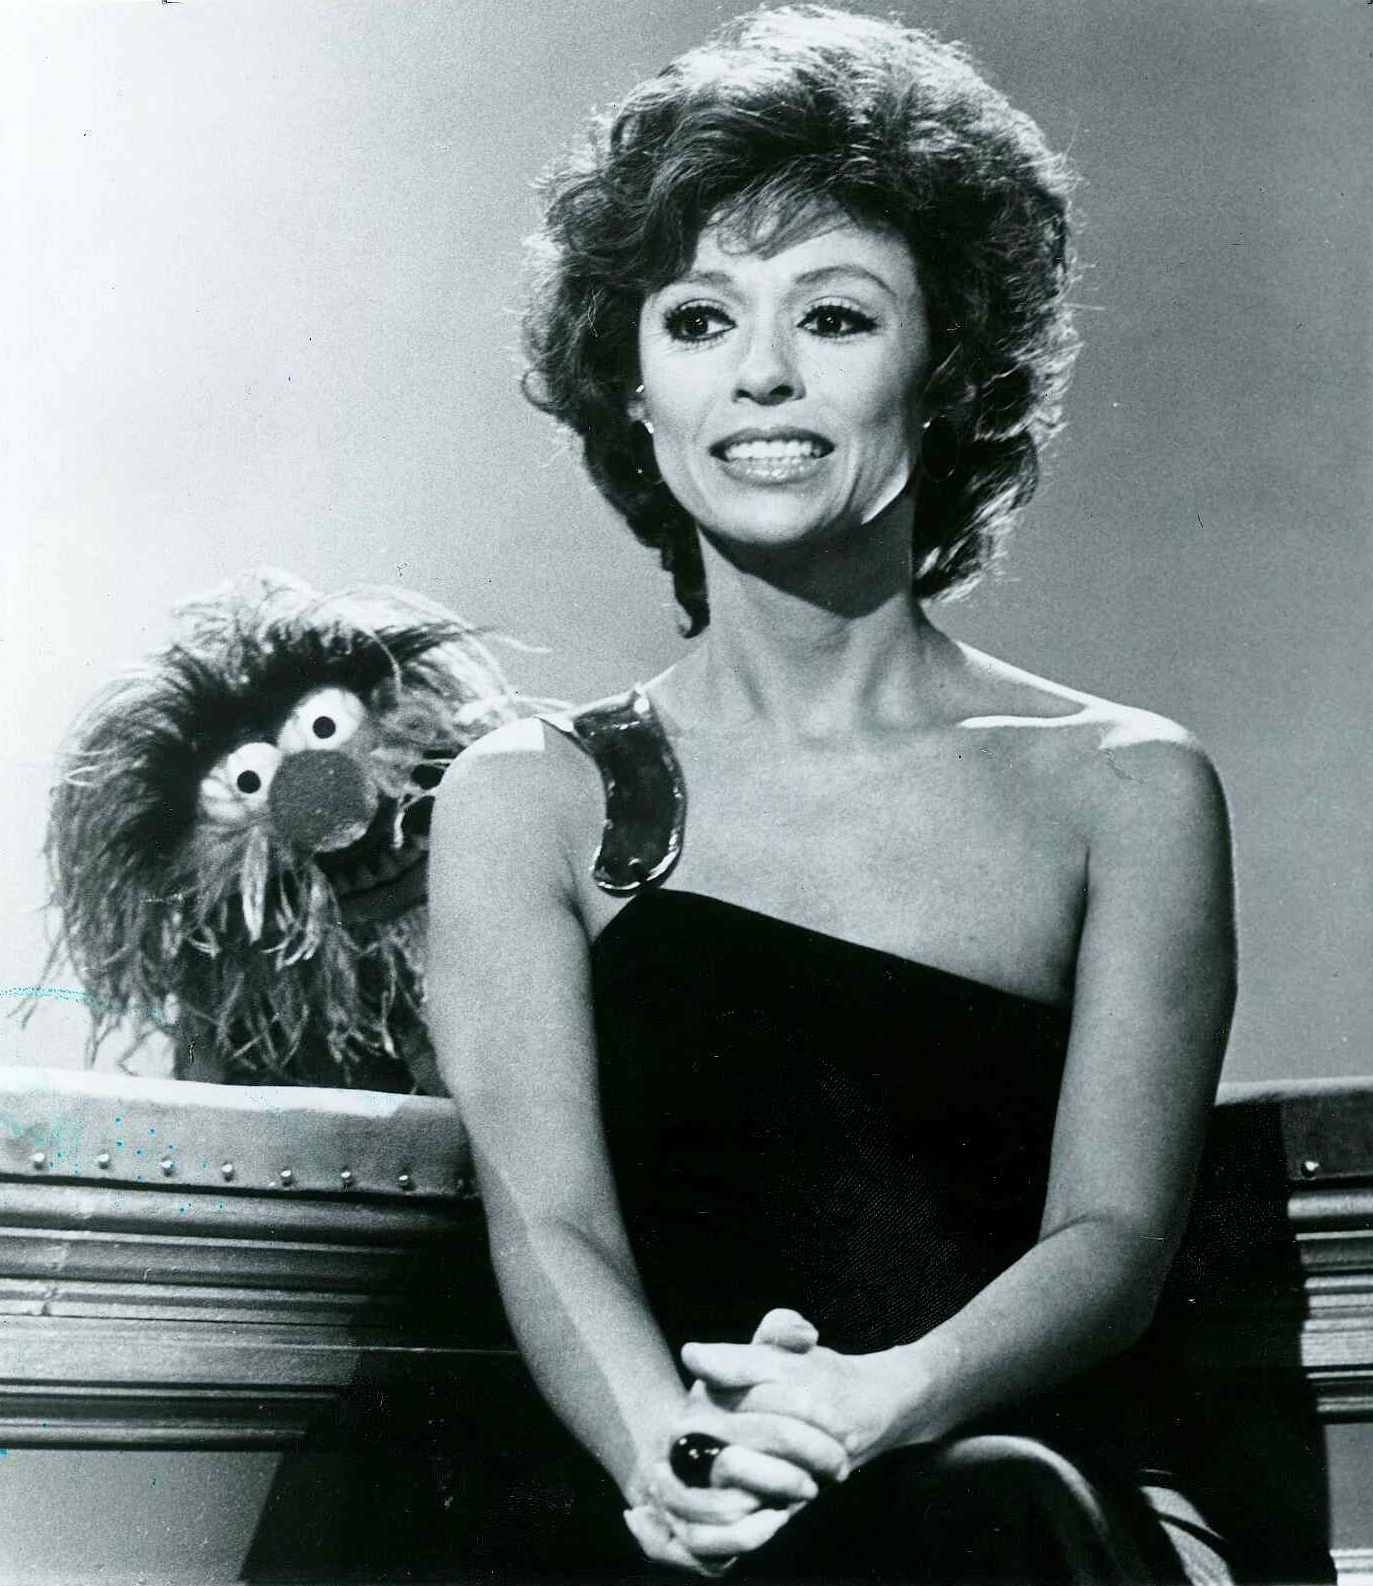 Rita Moreno, National Women's History Month